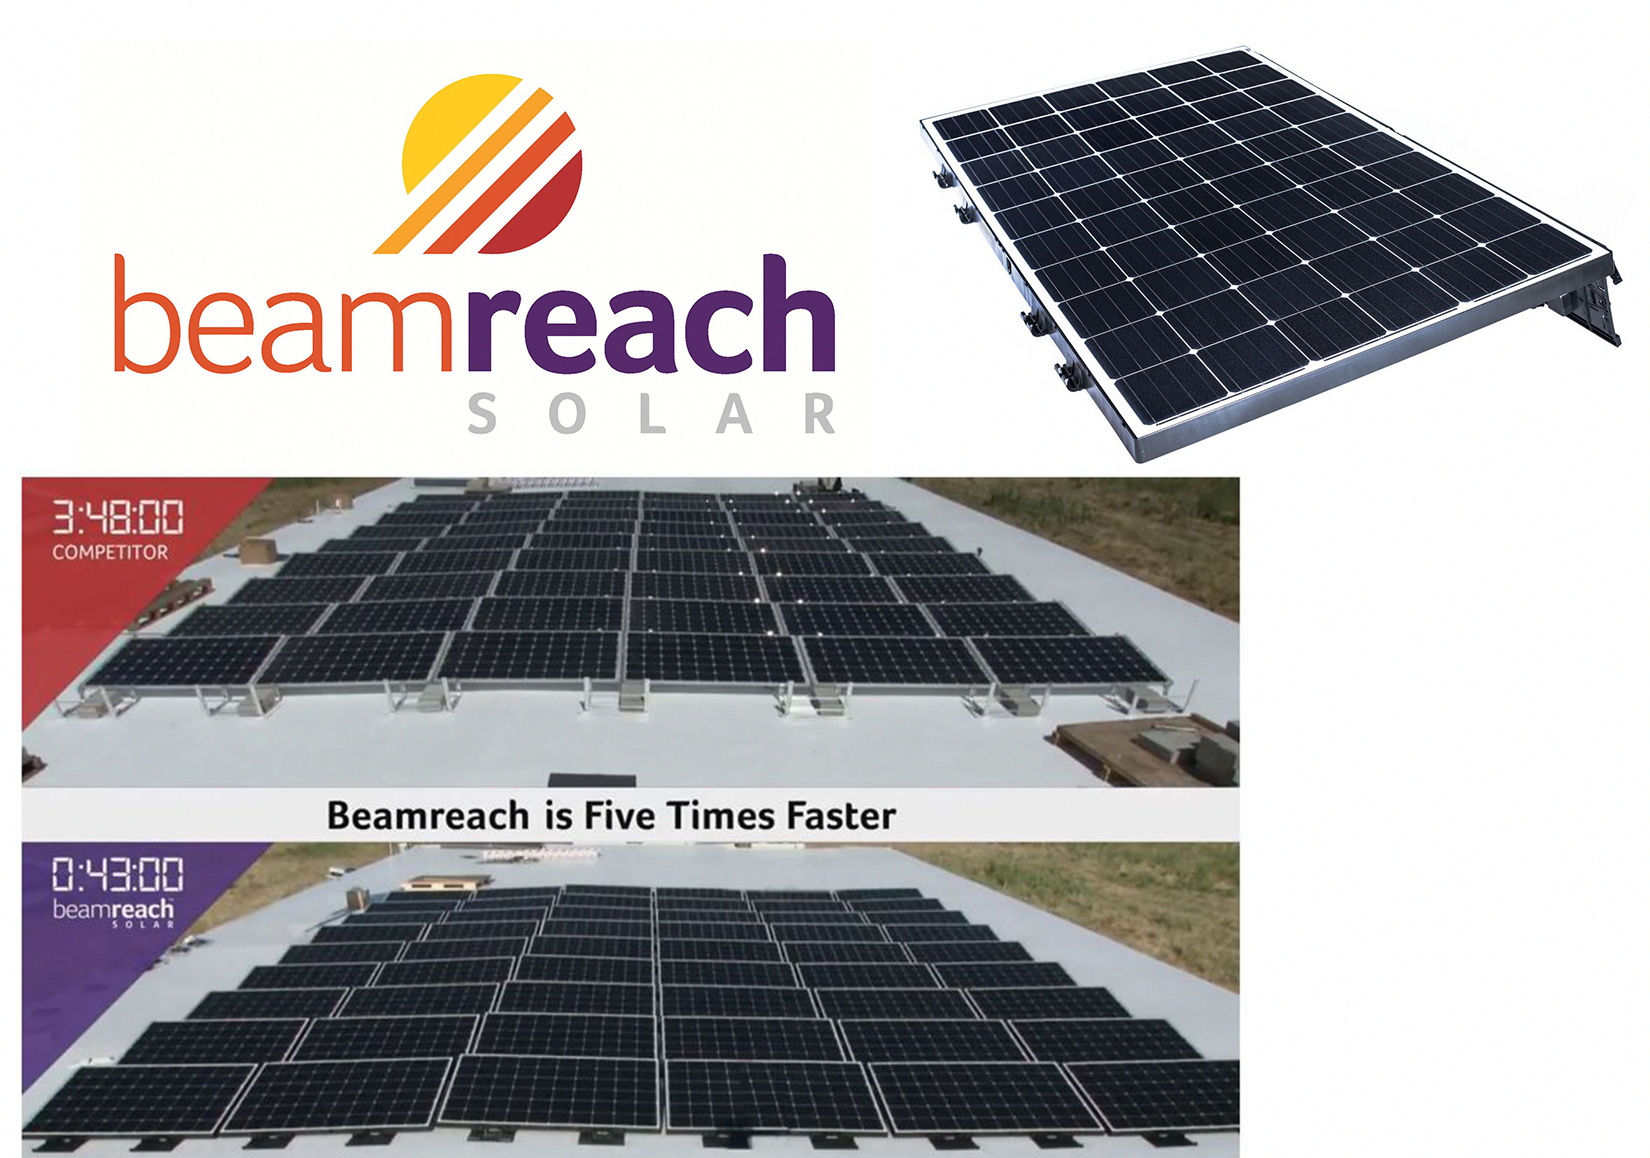 Solar Panels Pv Systems Inverters Batteries And All Bos At The World S Lowest Prices Suniva Trina Kyocera Solar Solar Energy Panels Solar Panels Solar